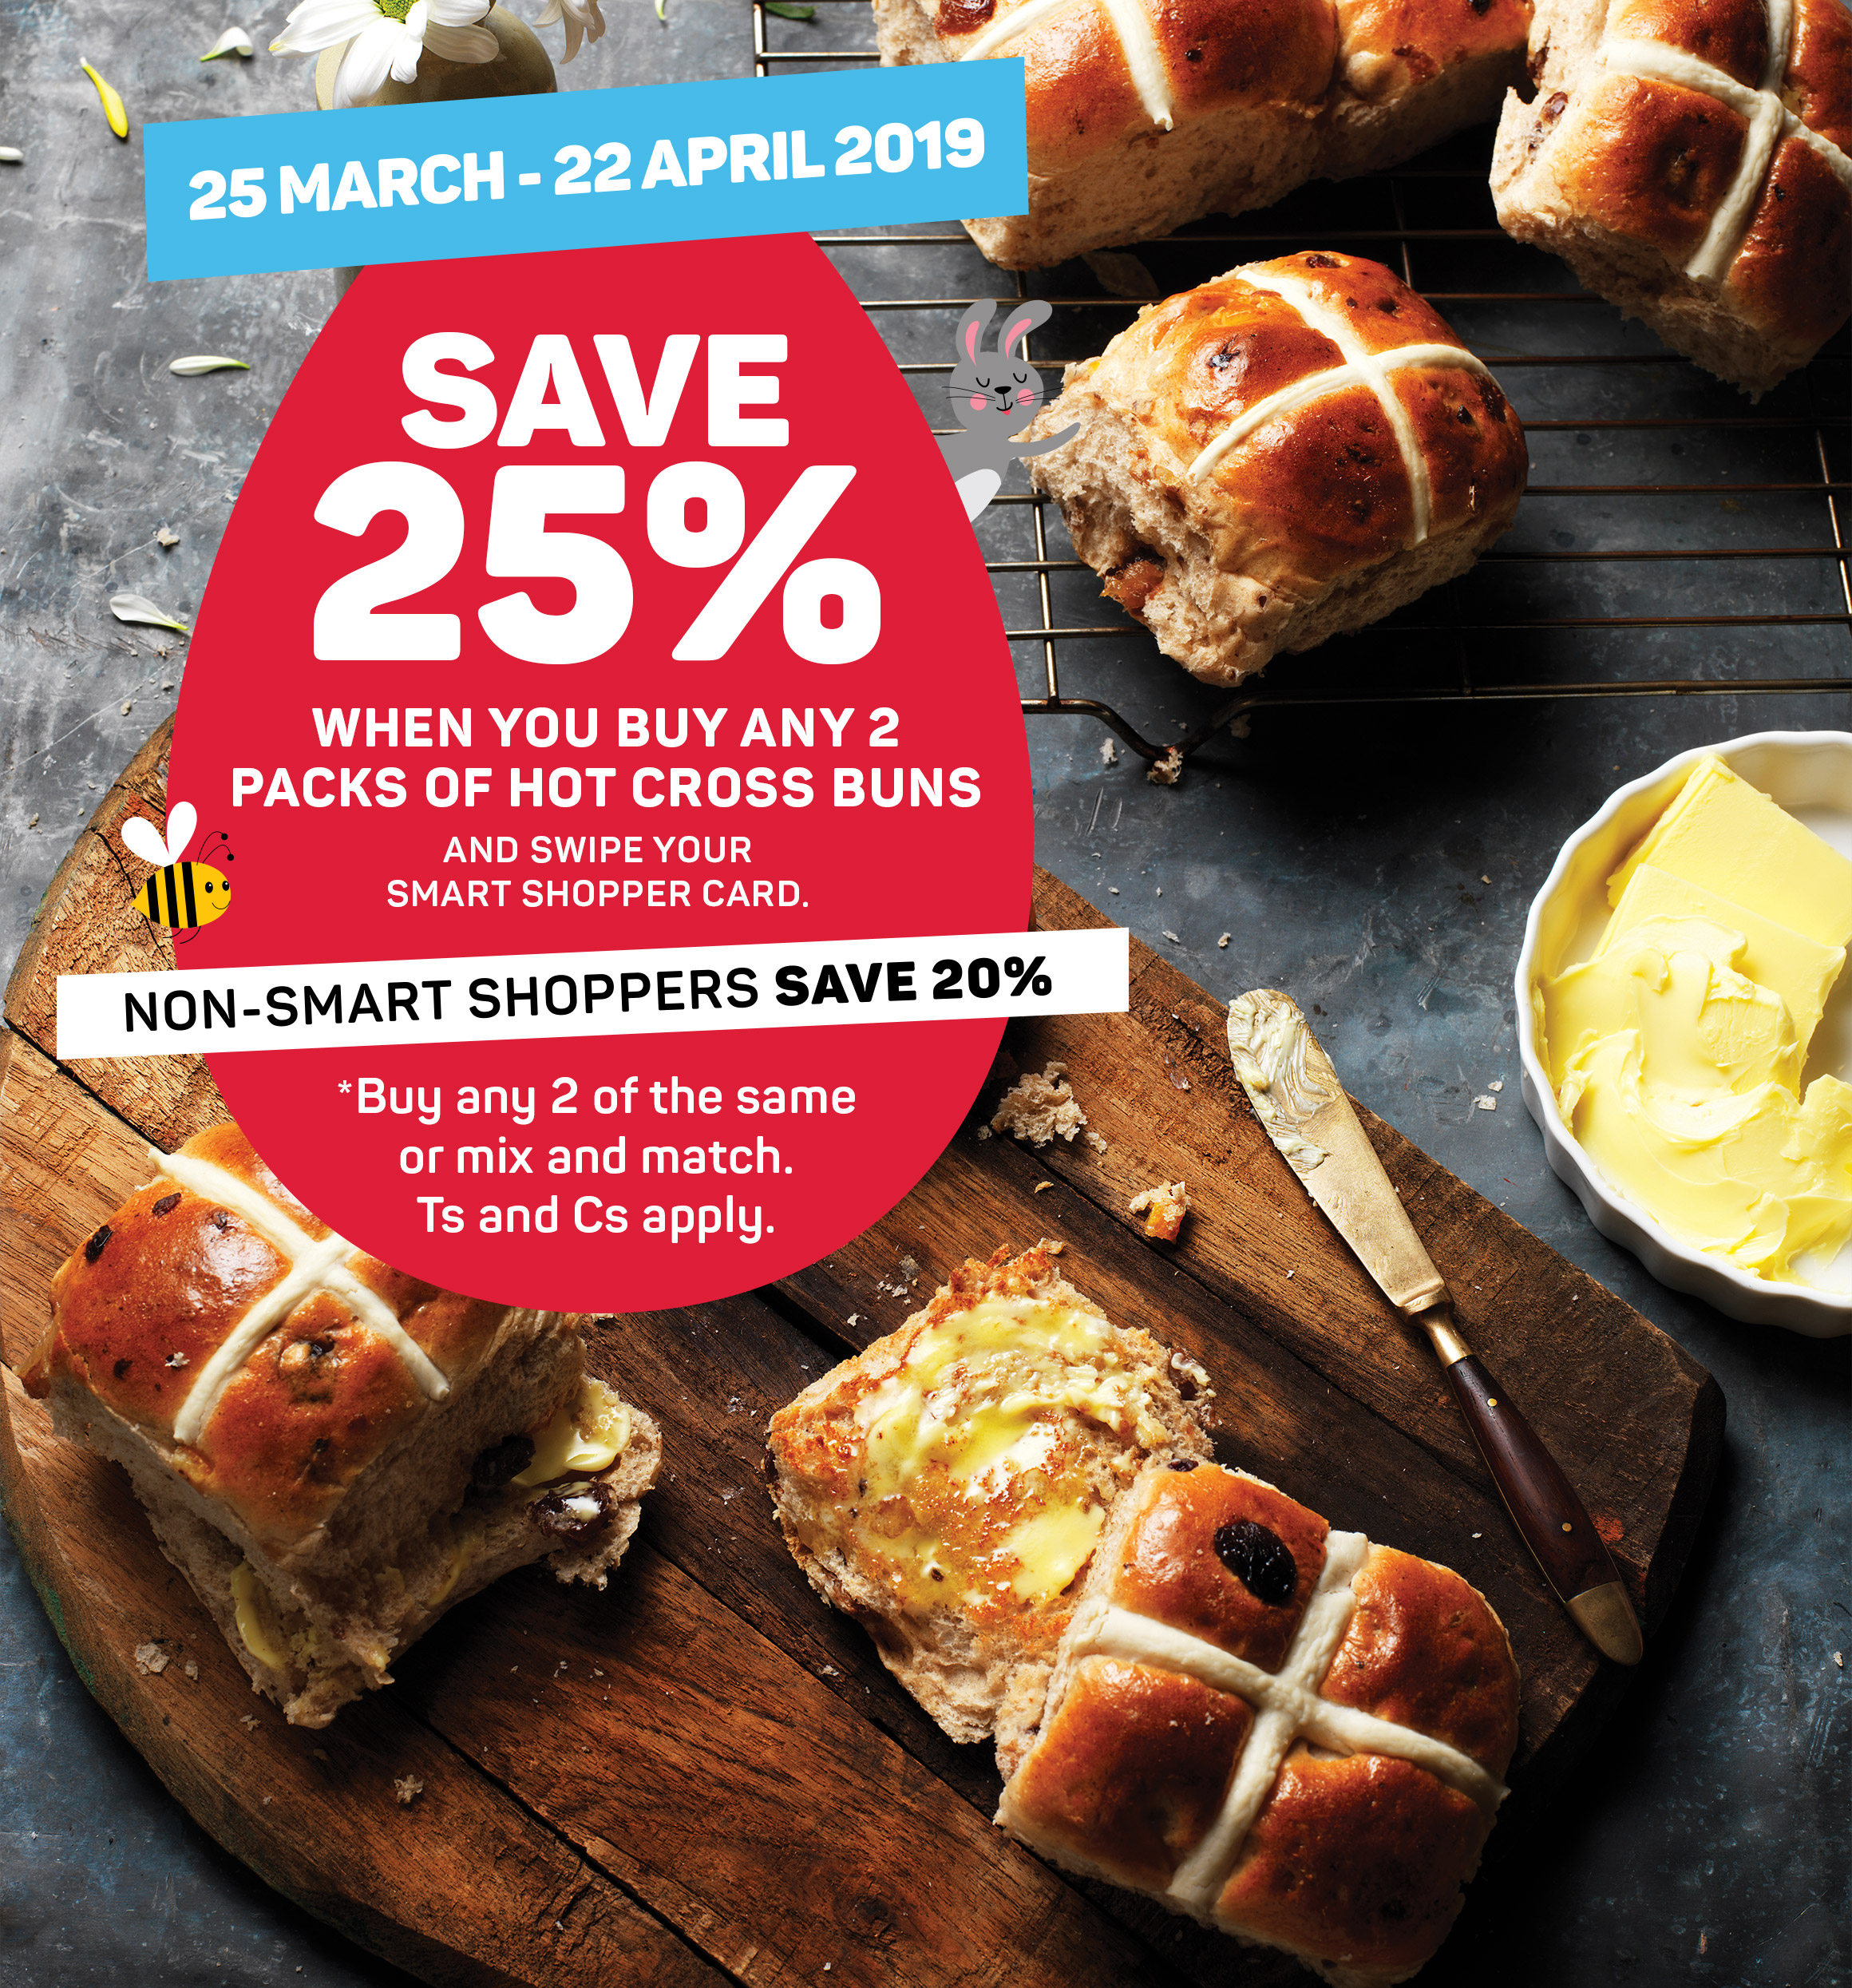 Save 25% when you buy any 2 Packs of hot cross buns